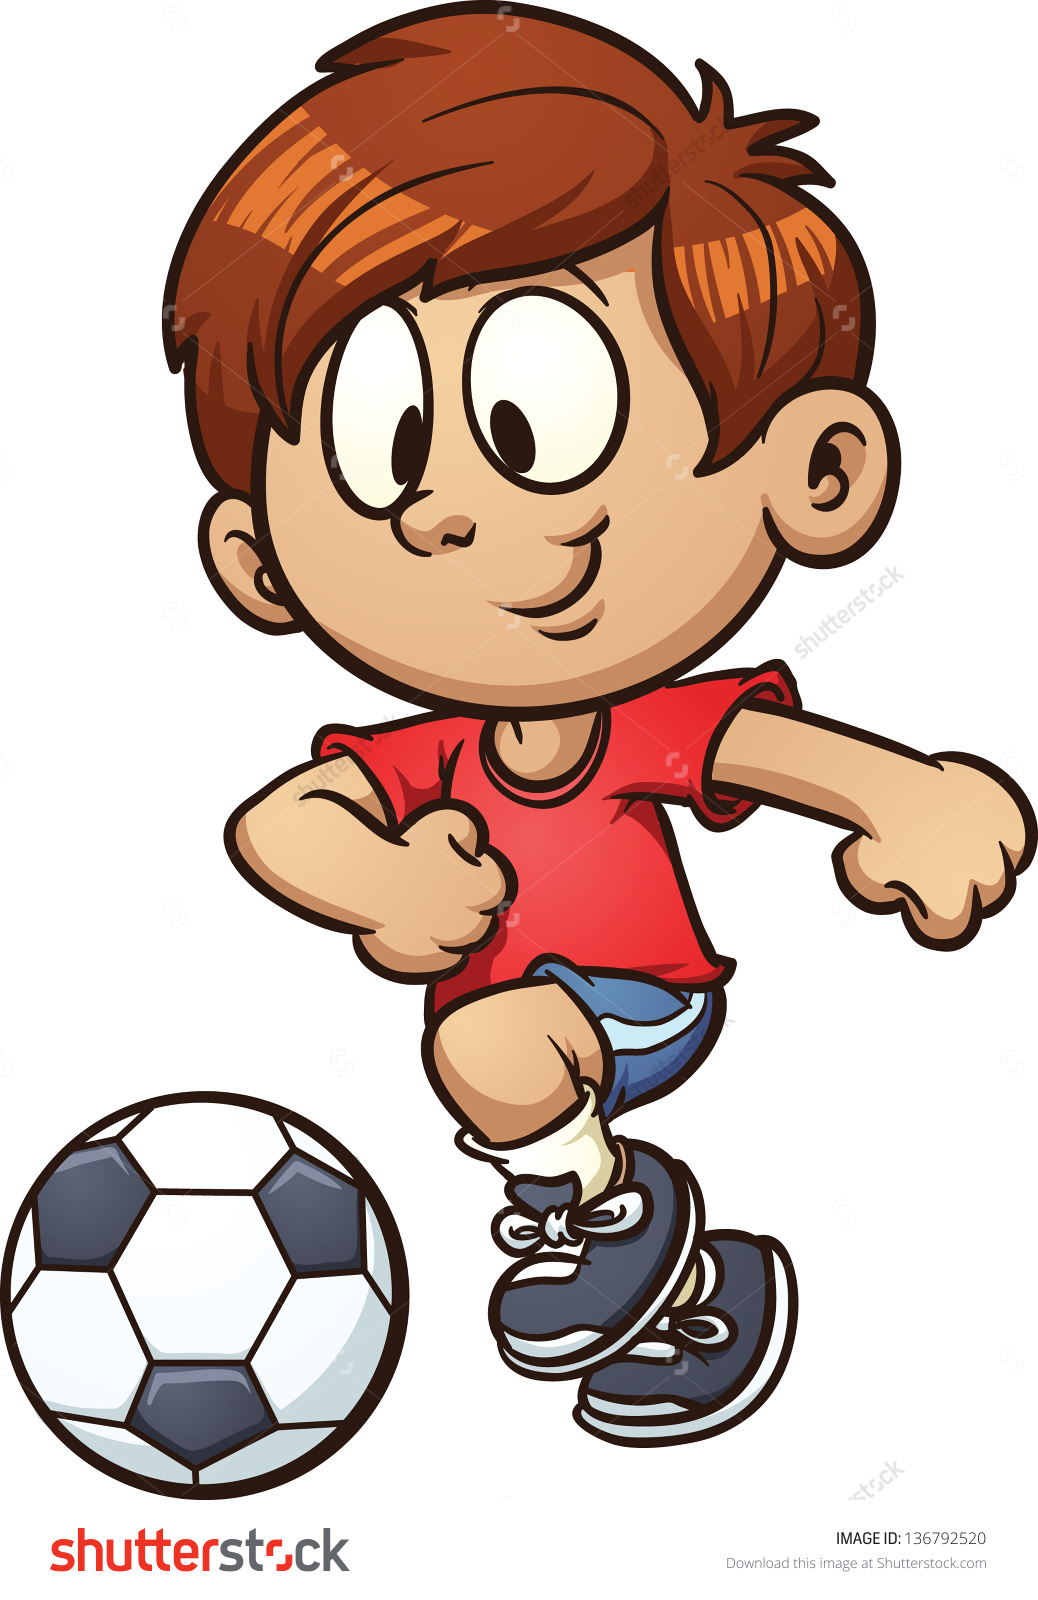 clipart royalty free stock Kids soccer clipart. Free boy cliparts download